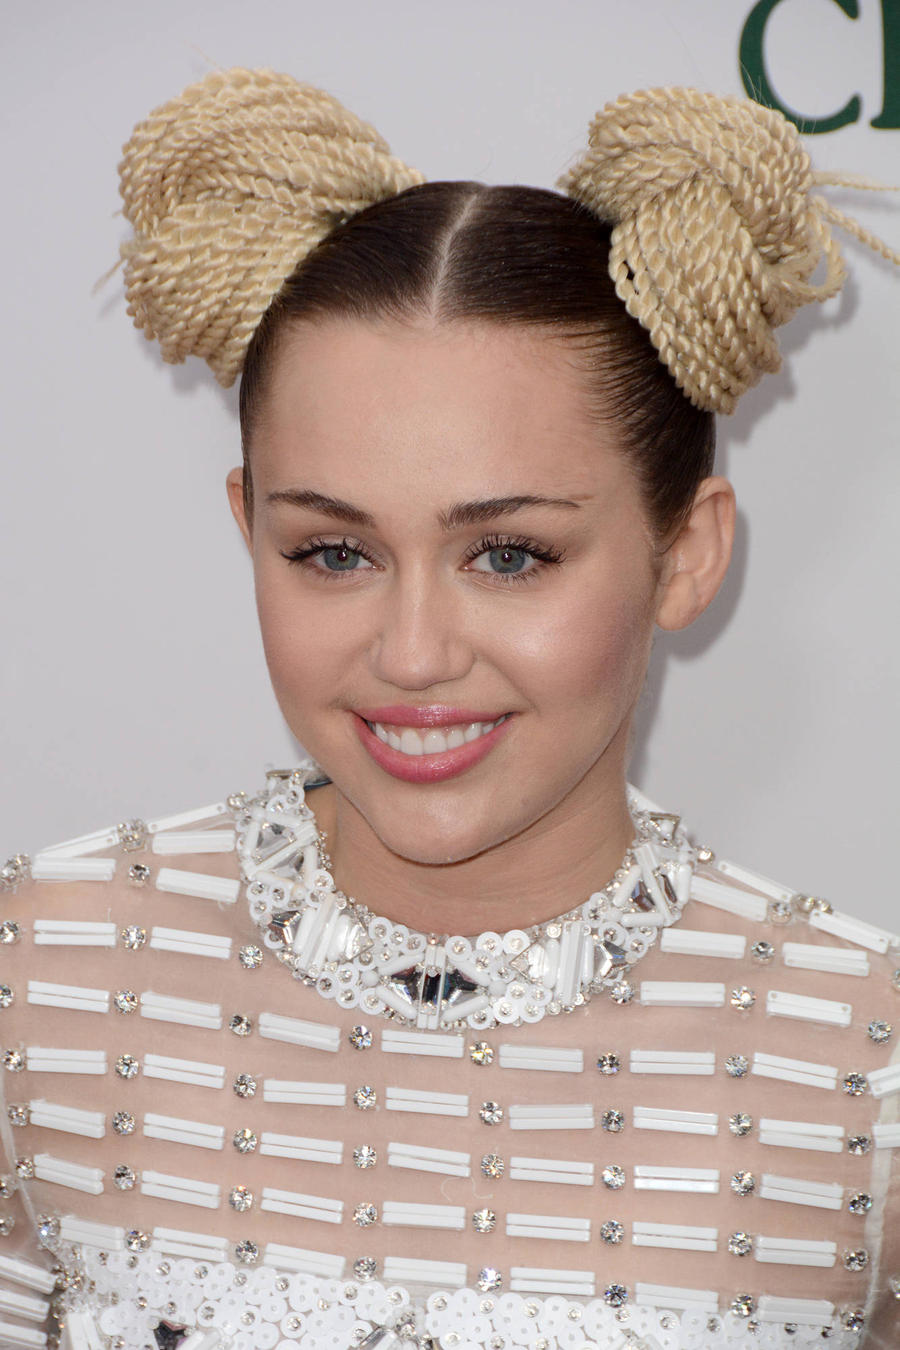 Miley Cyrus Purchases Home For Her And Liam Hemsworth